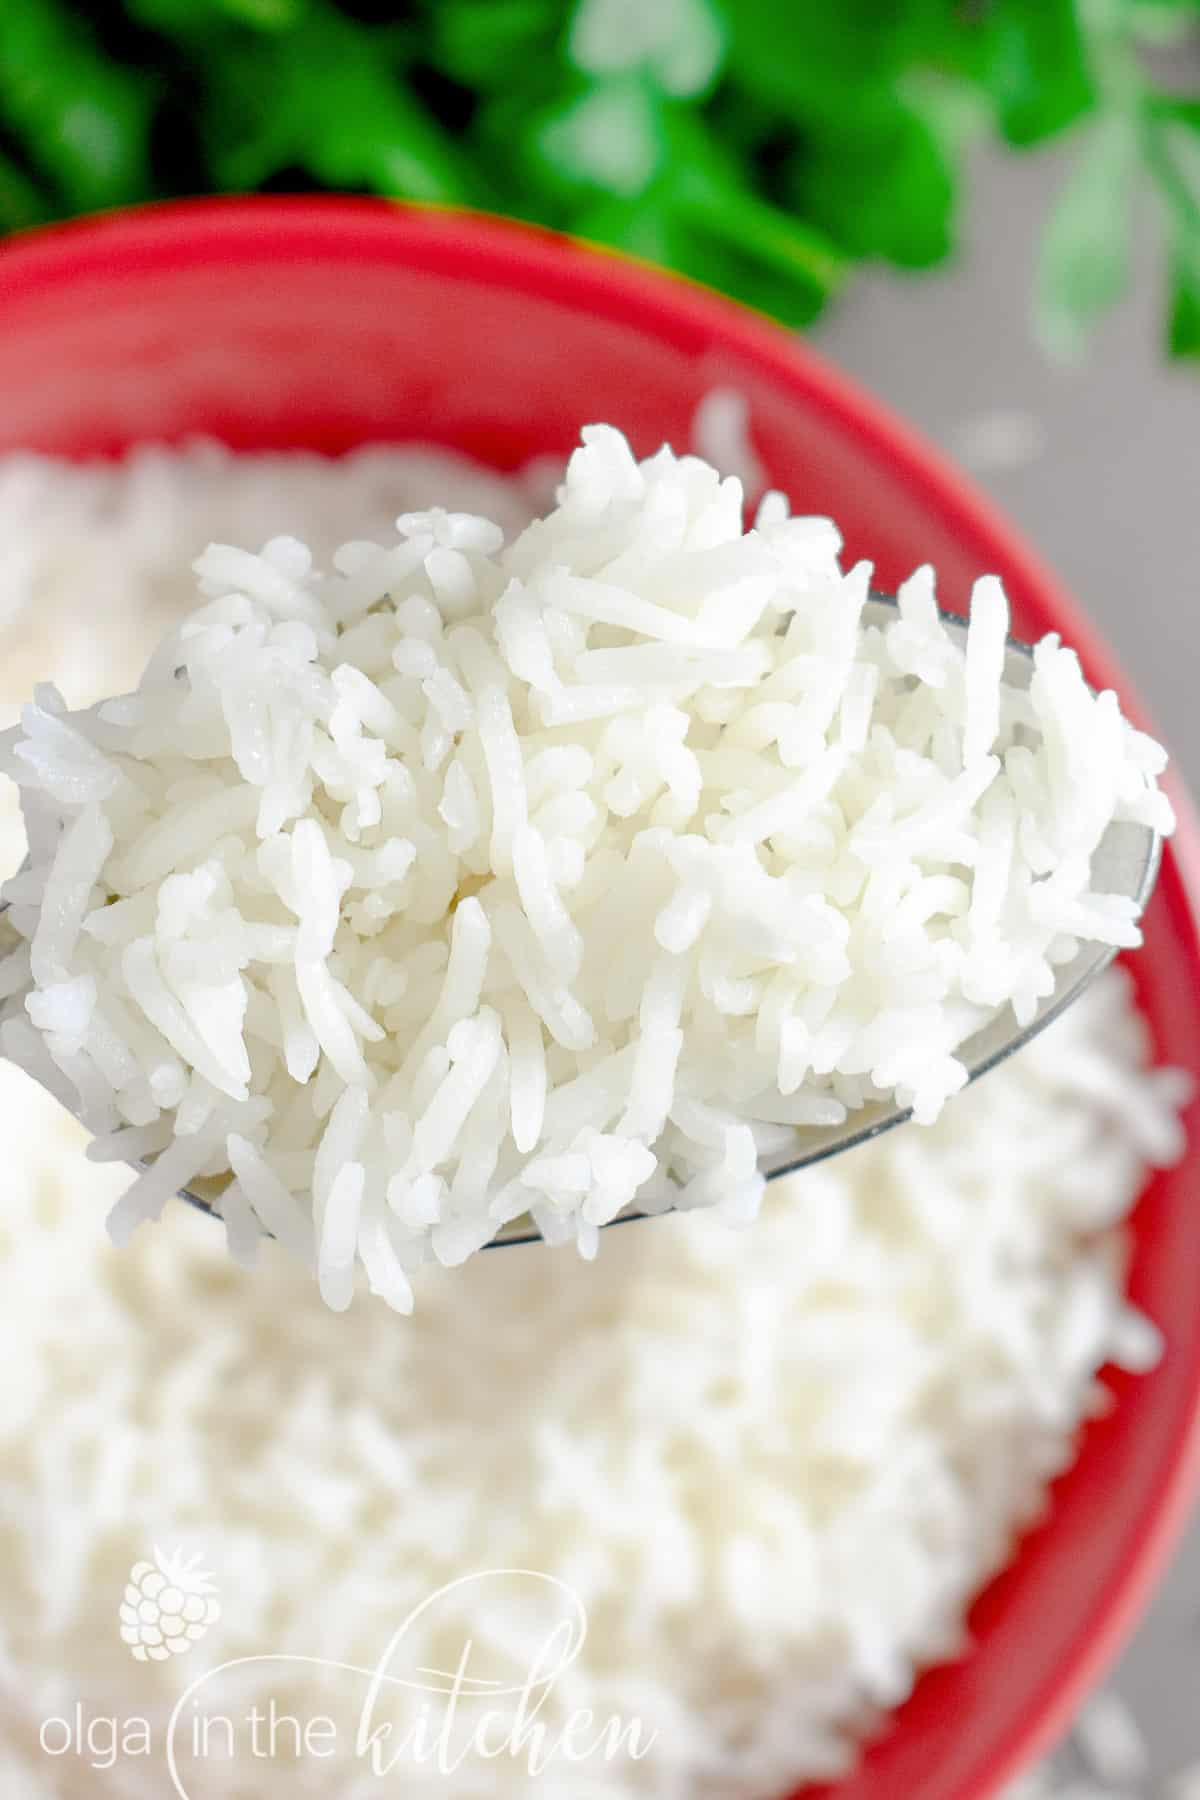 A simple but reliable stove-top method of How to Cook White Rice to achieve perfectly tender and fluffy texture every time. | olgainthekitchen.com